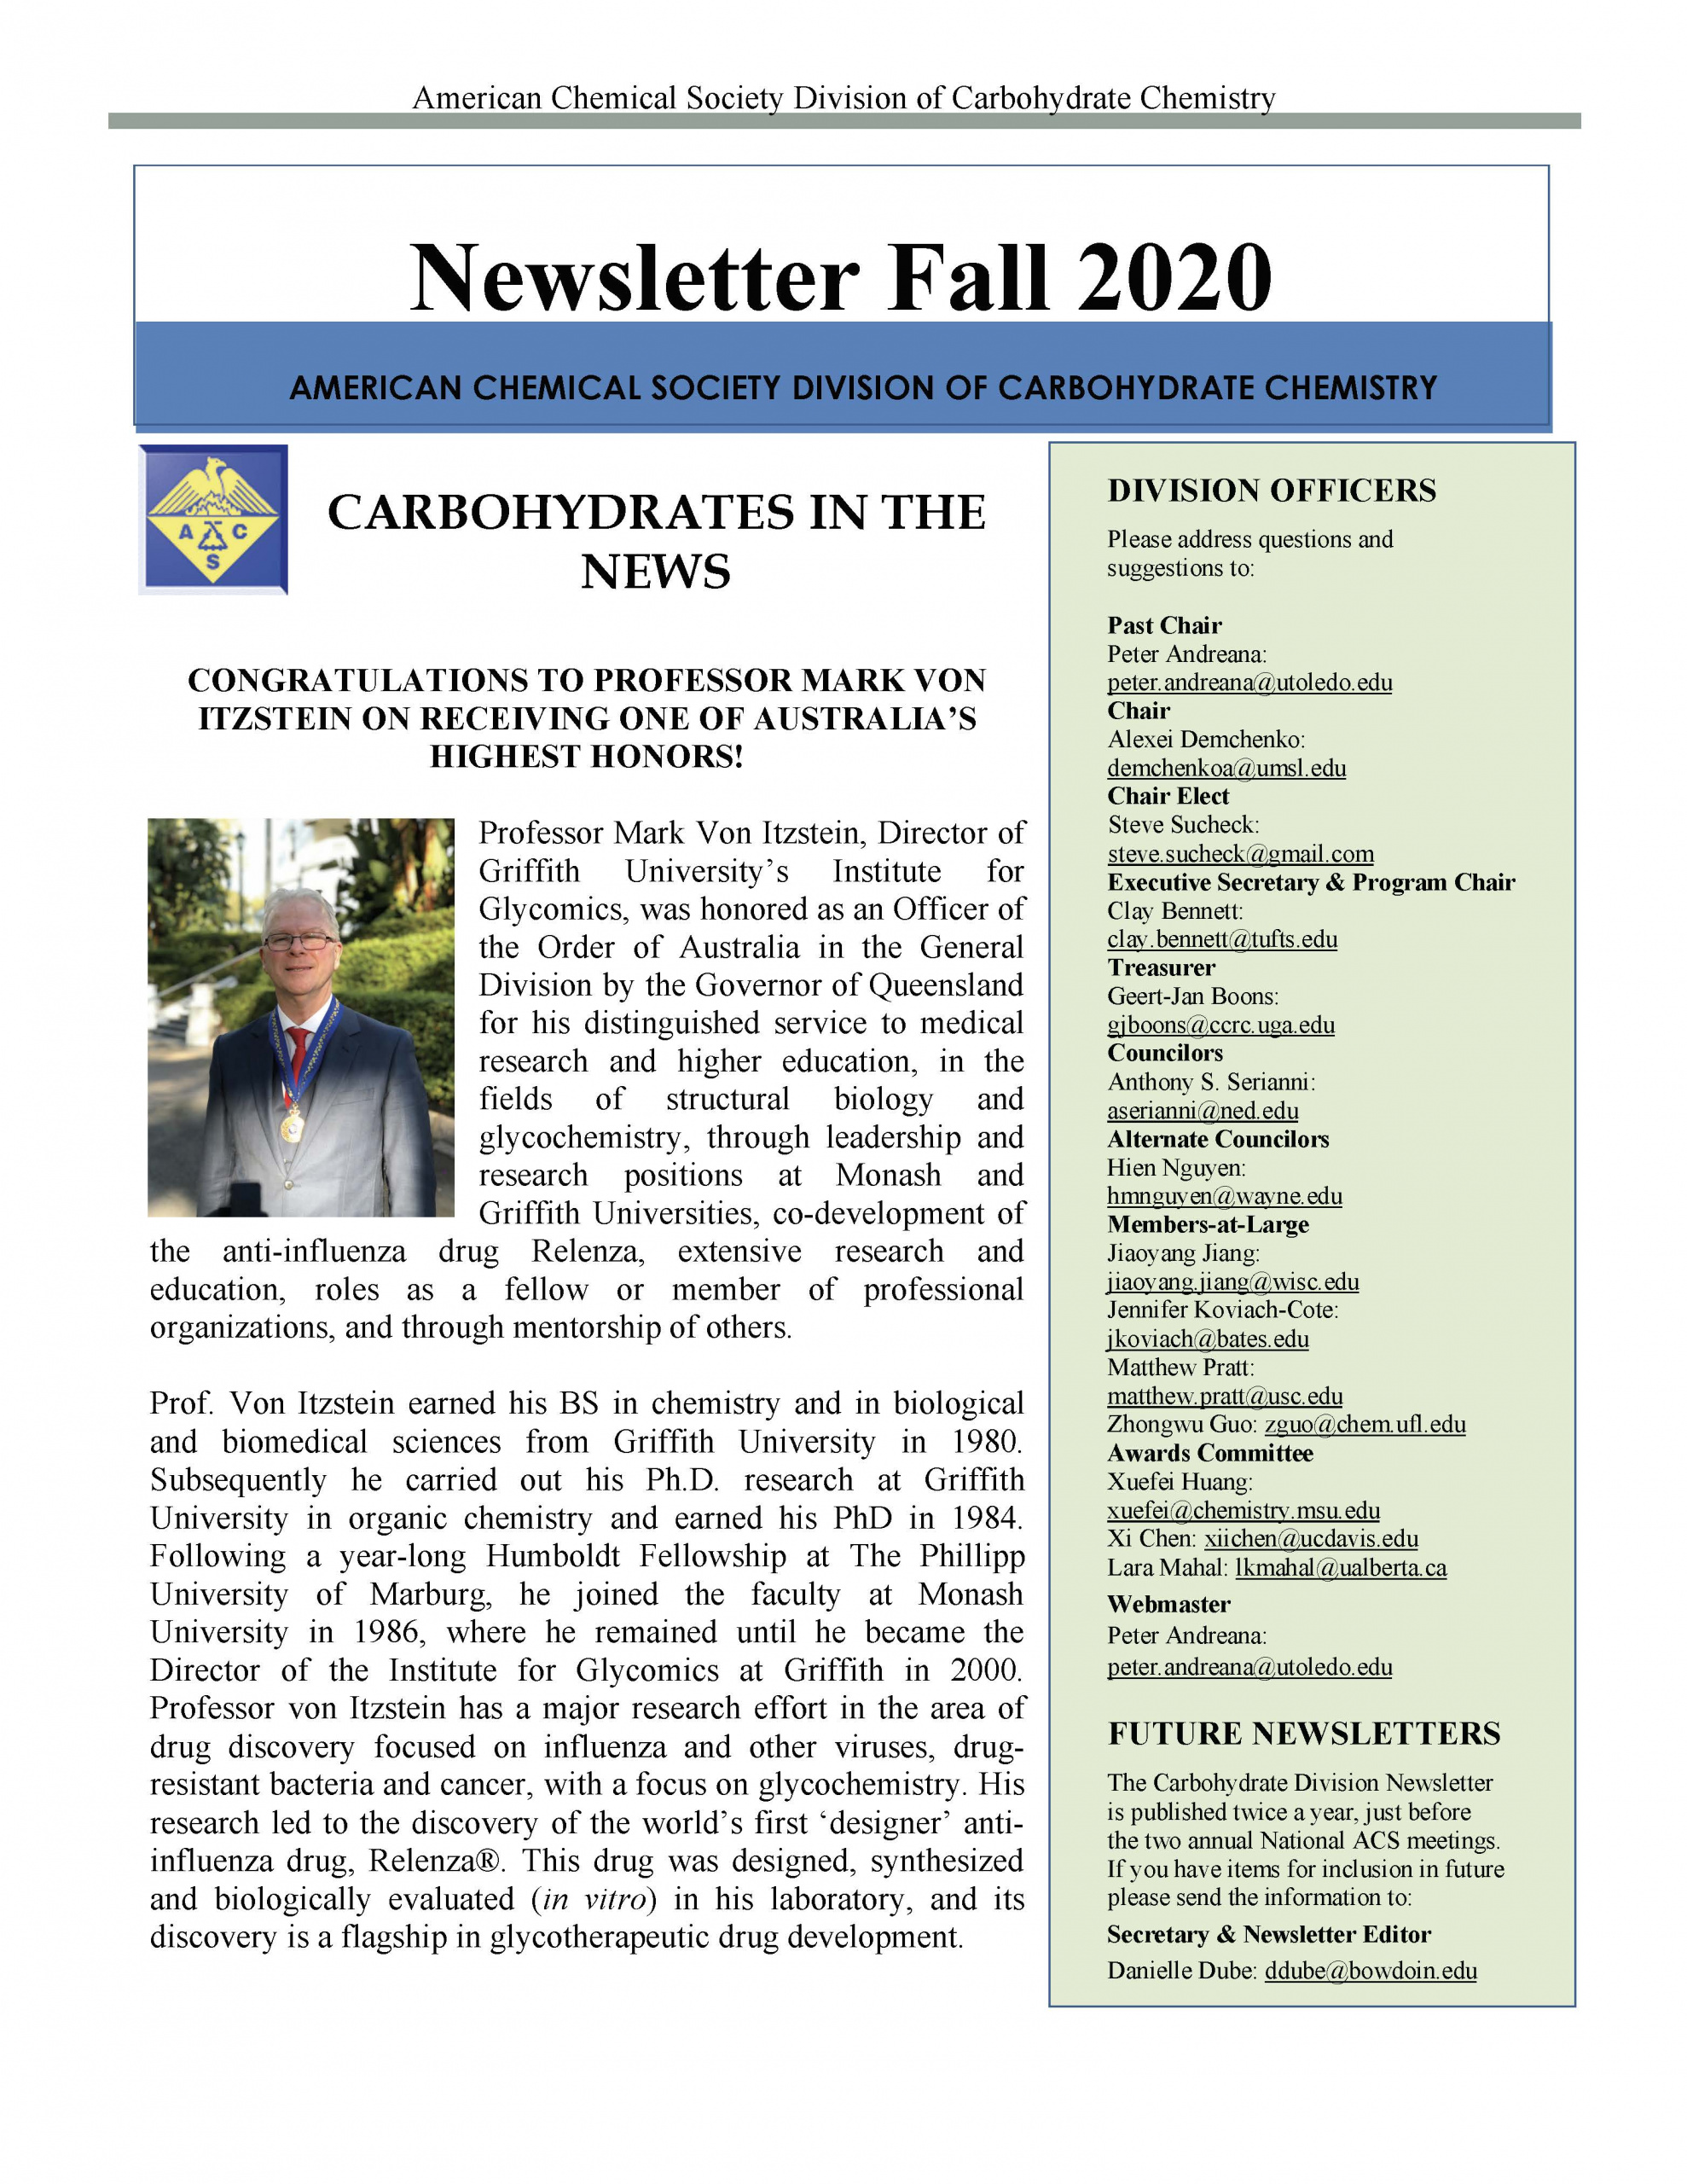 CARB Newsletter Fall 2020 FINAL_Page_01